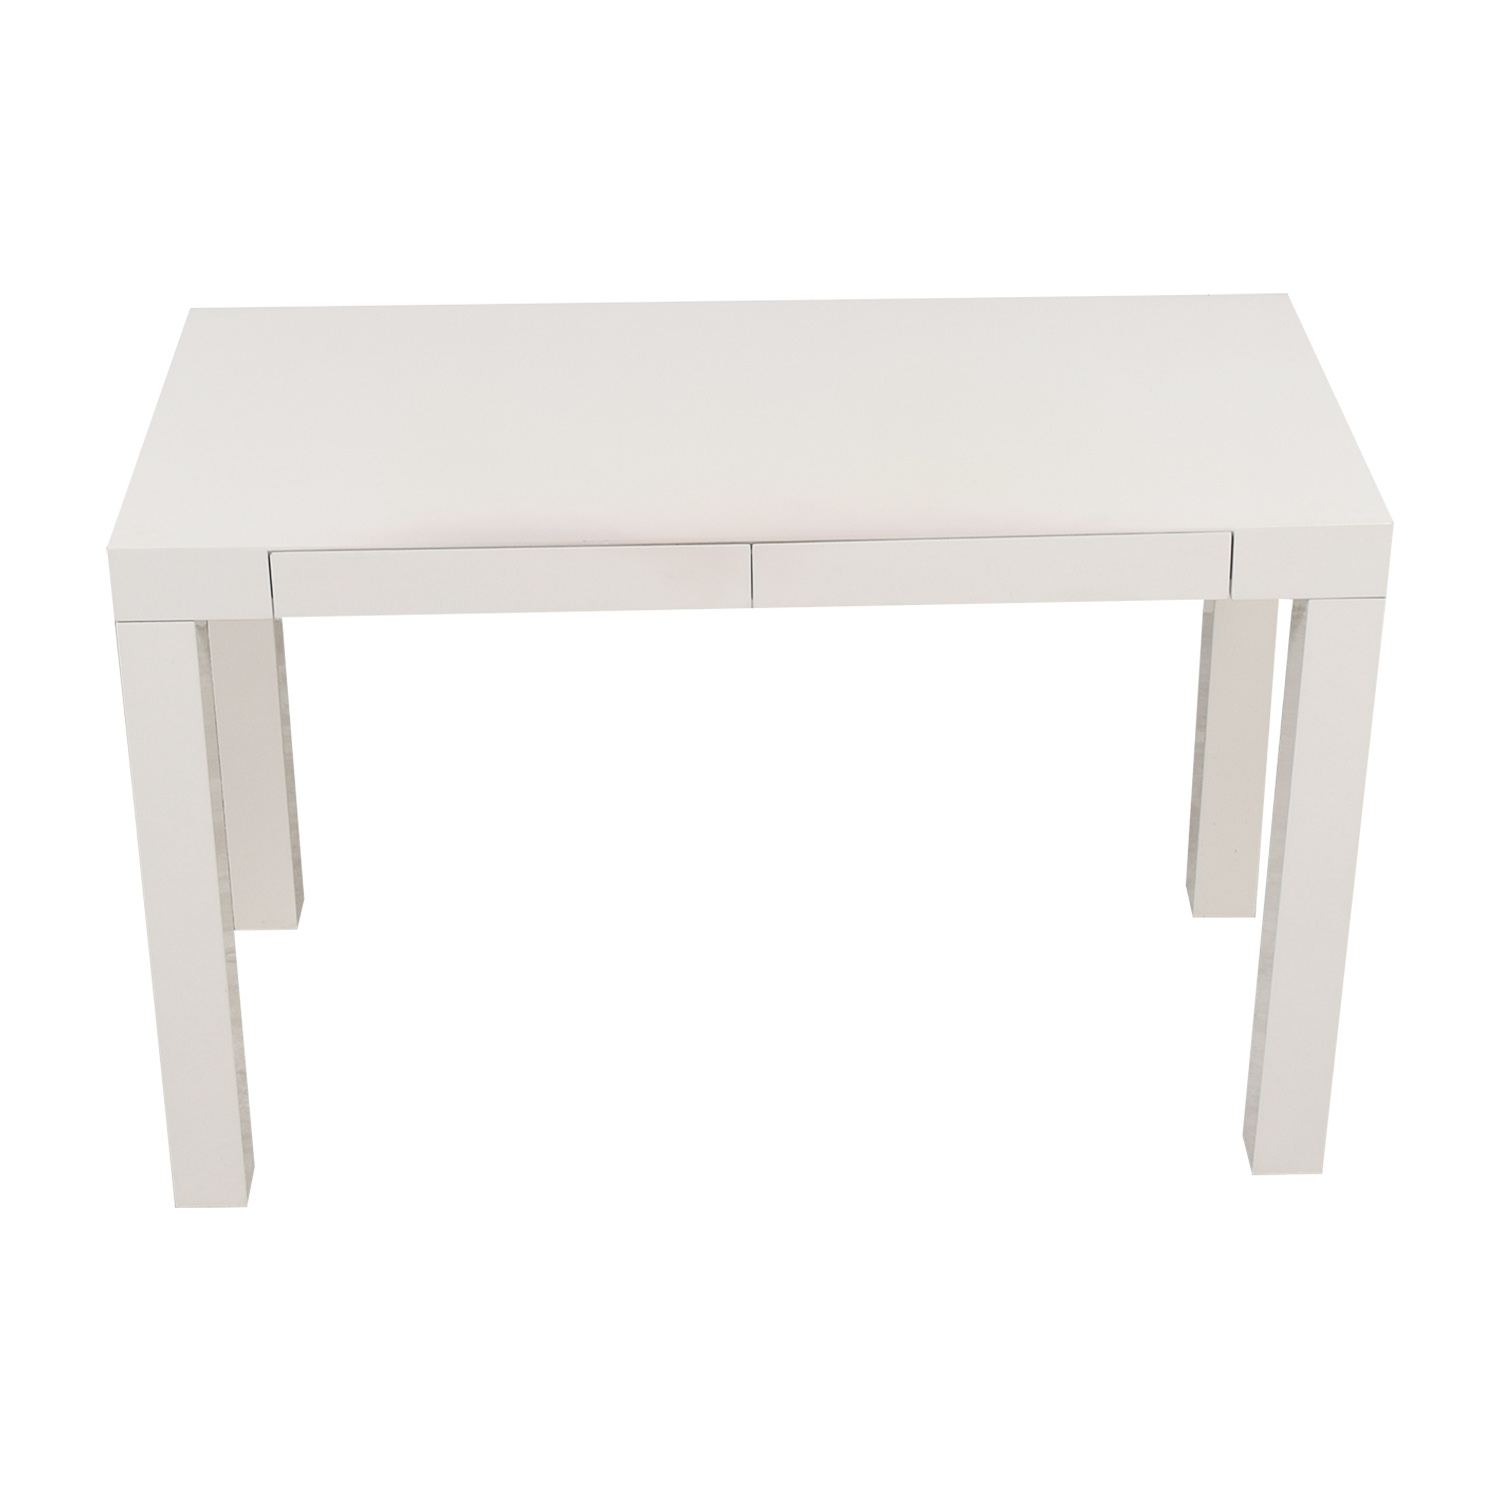 West Elm West Elm Pasons White Two-Drawer Desk coupon